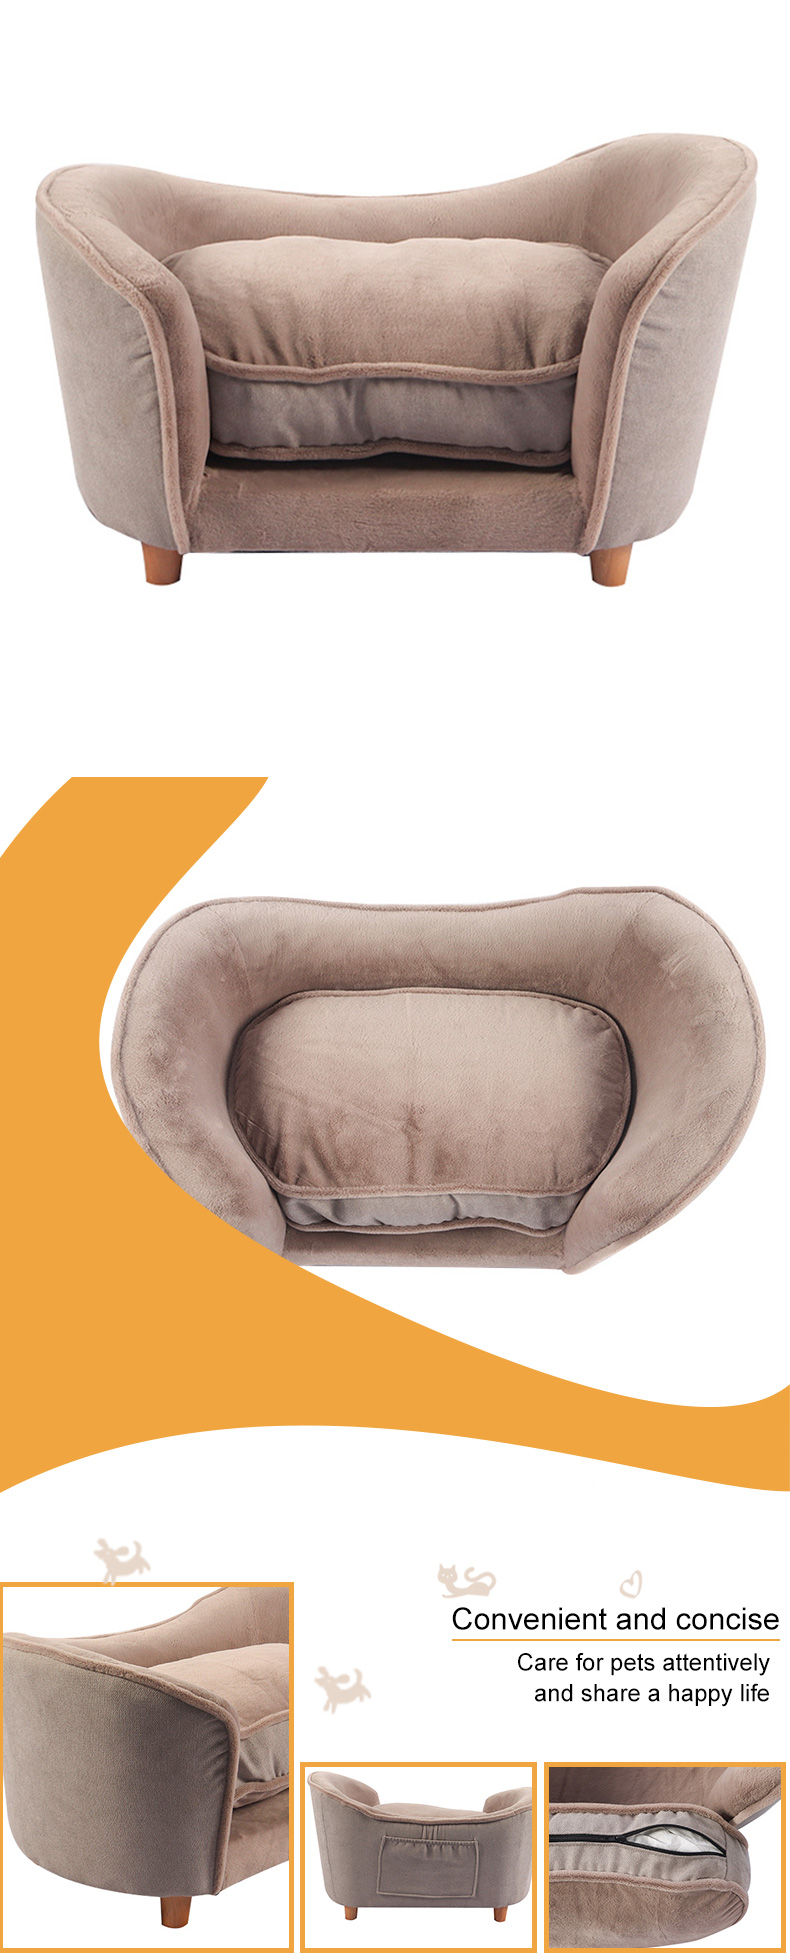 A cat sofa with a silver ingot shape